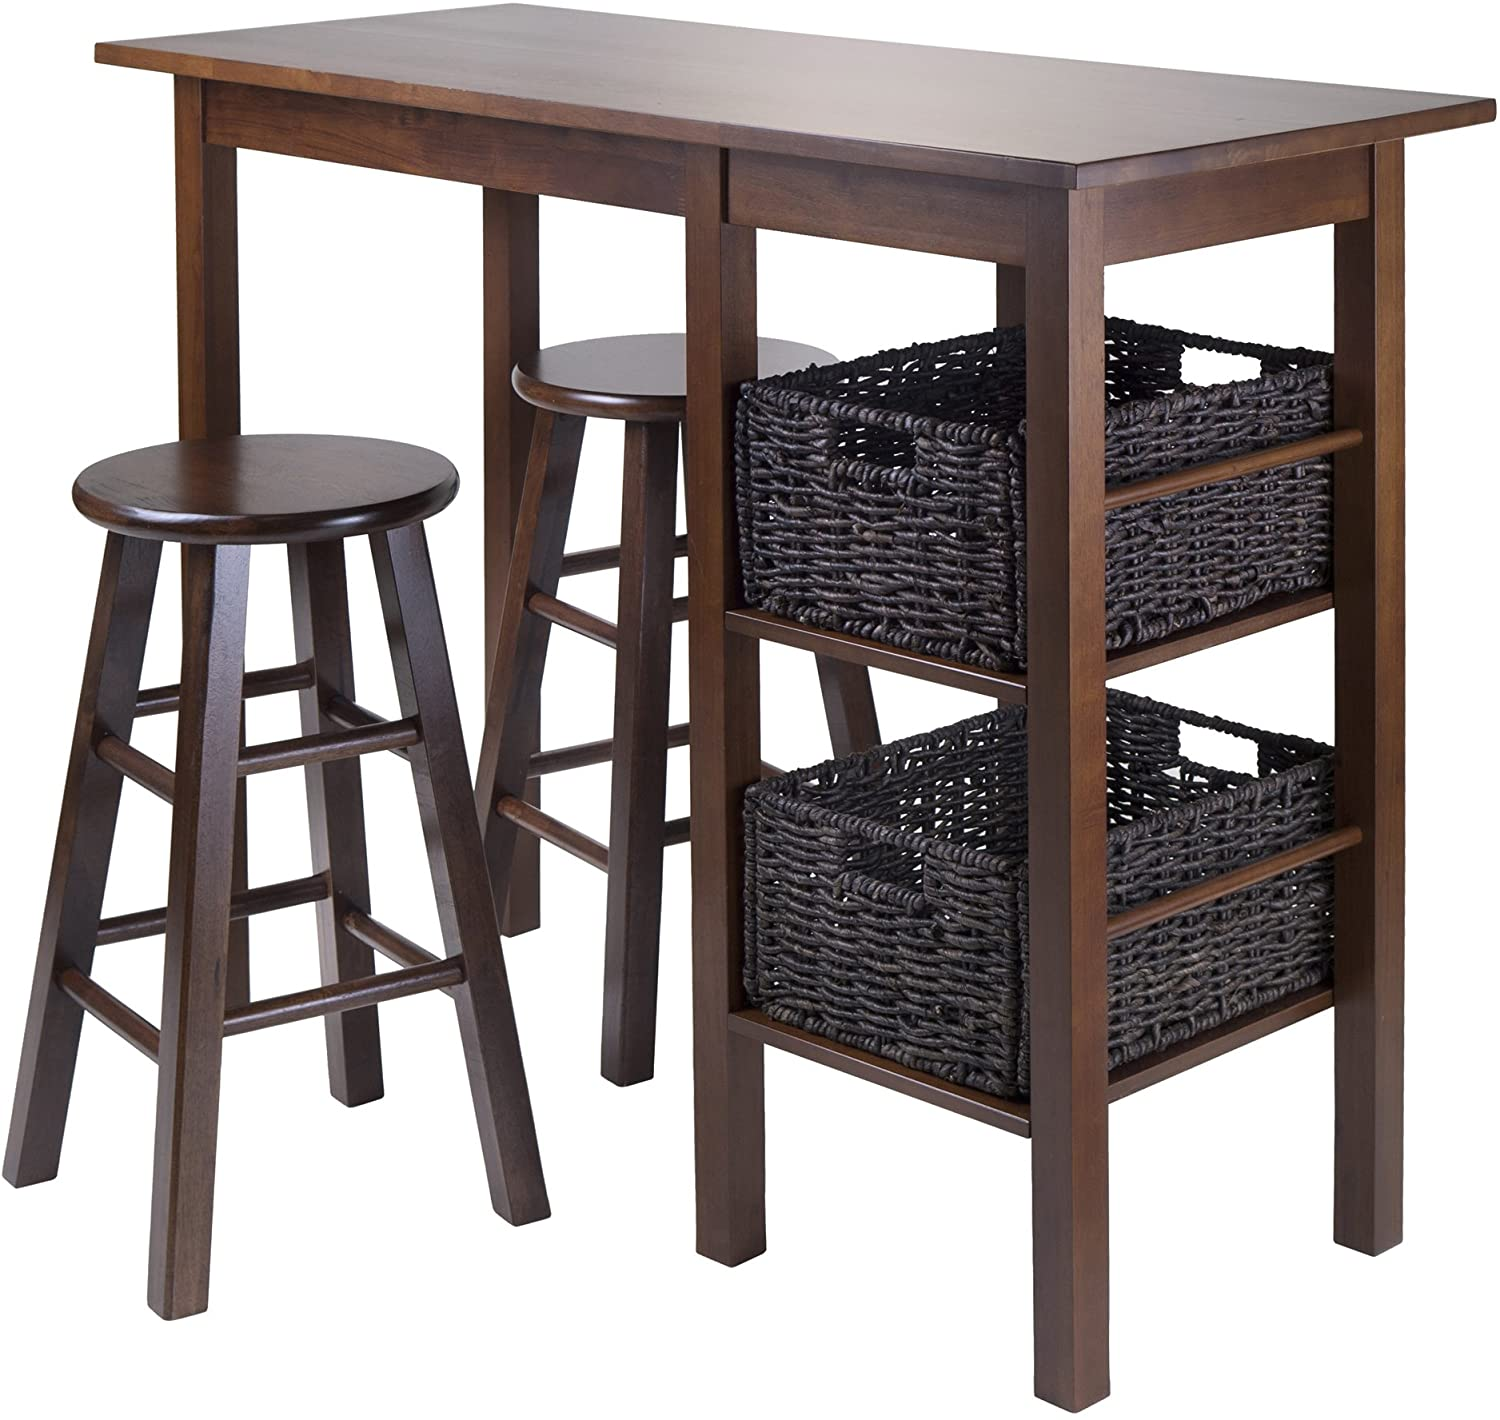 "Egan 5Piece Table With 2, 24"" Square Legs Stools And 2 Baskets - Pot Racks Plus"